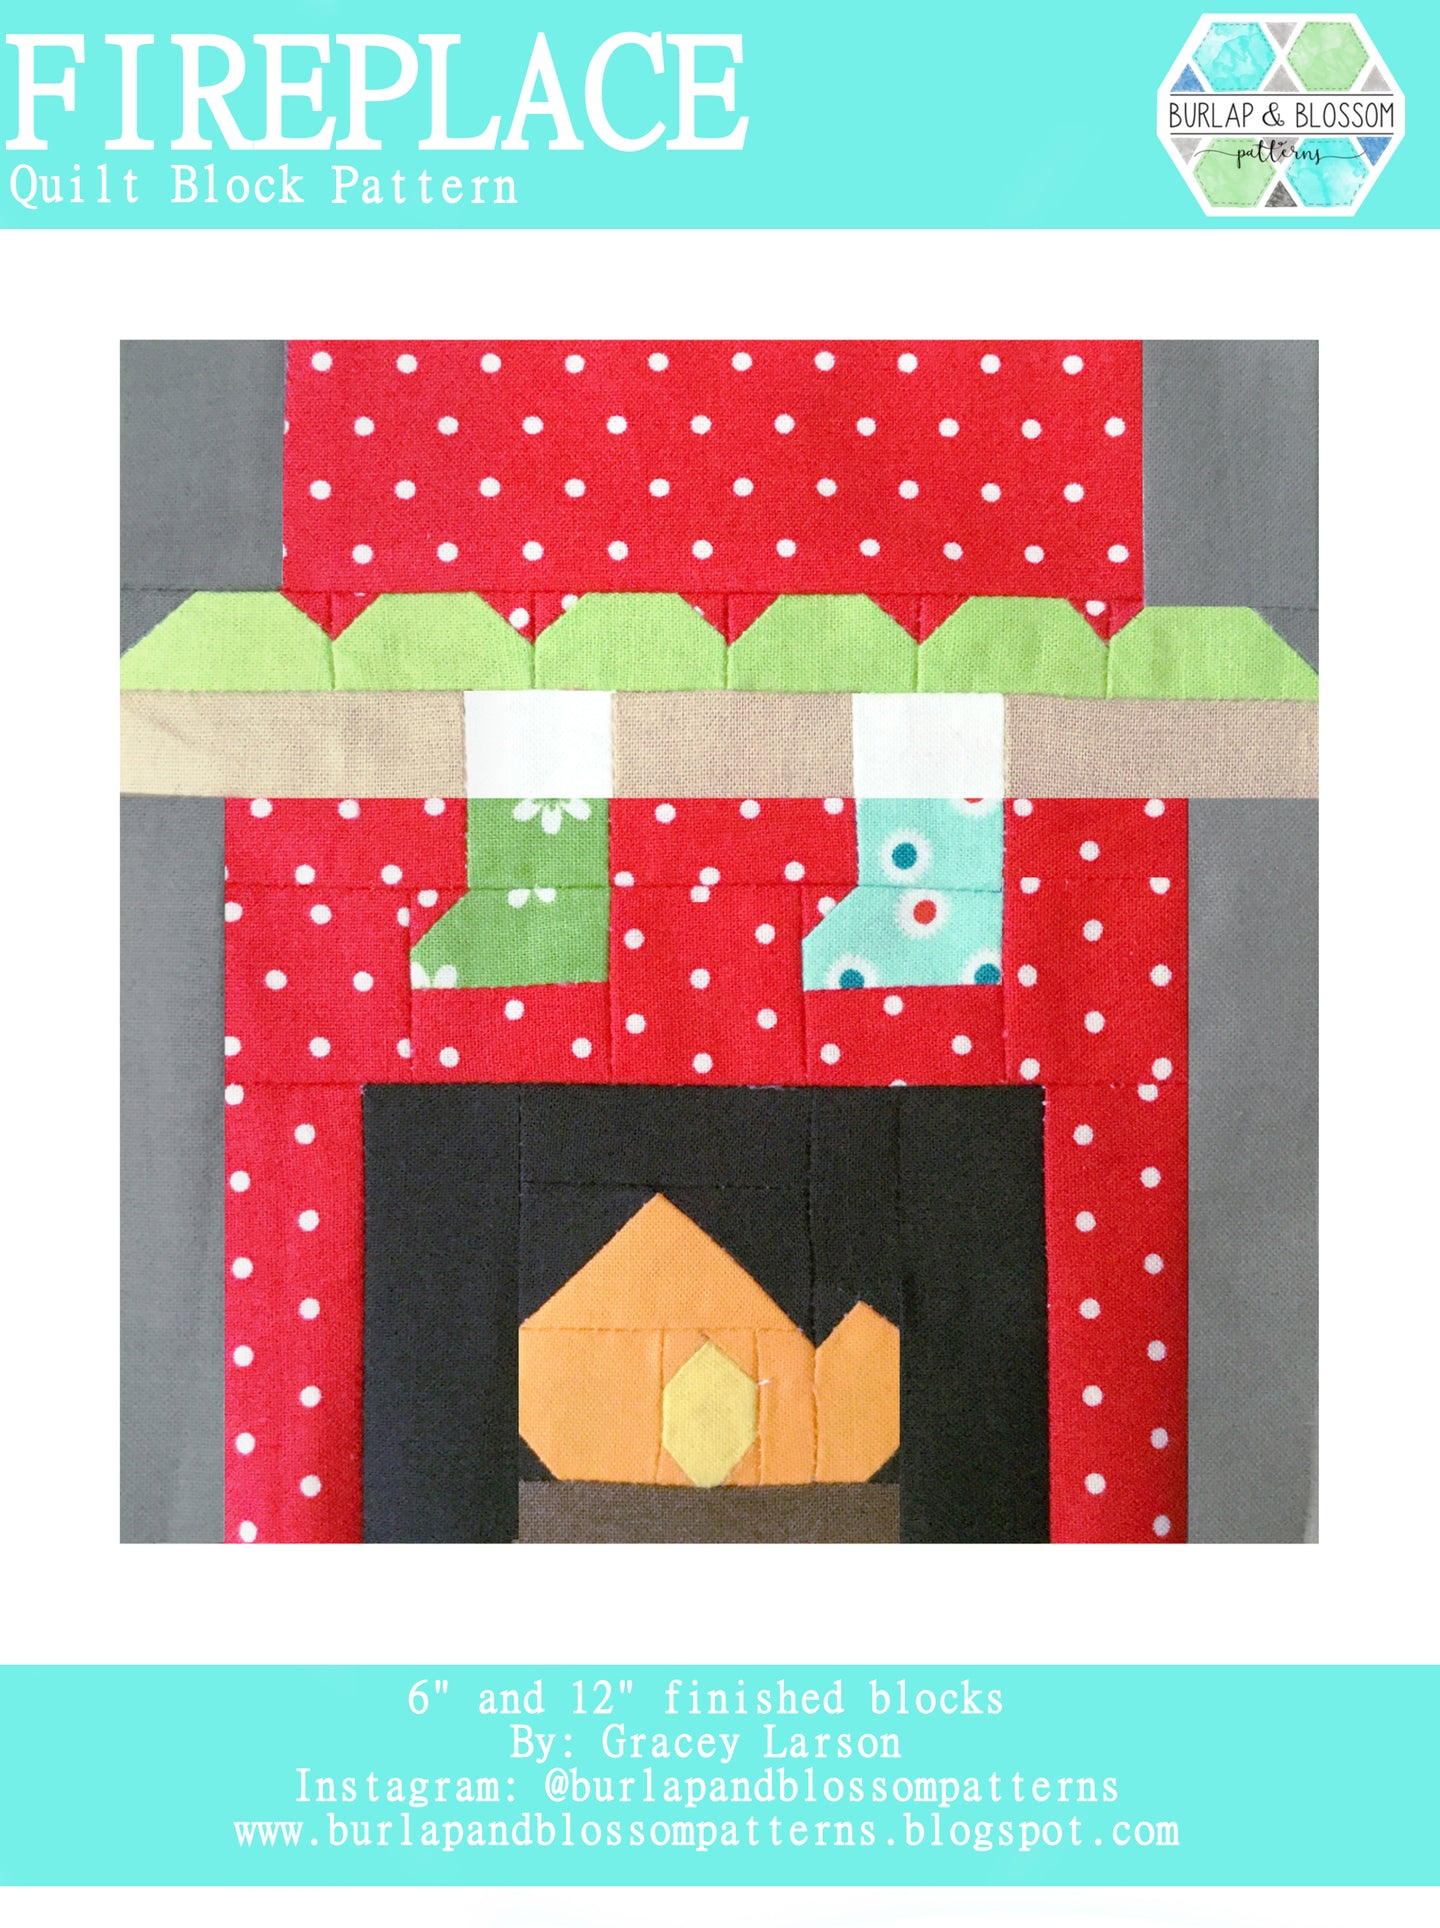 Pattern, Fireplace Quilt Block by Burlap and Blossom (digital download)